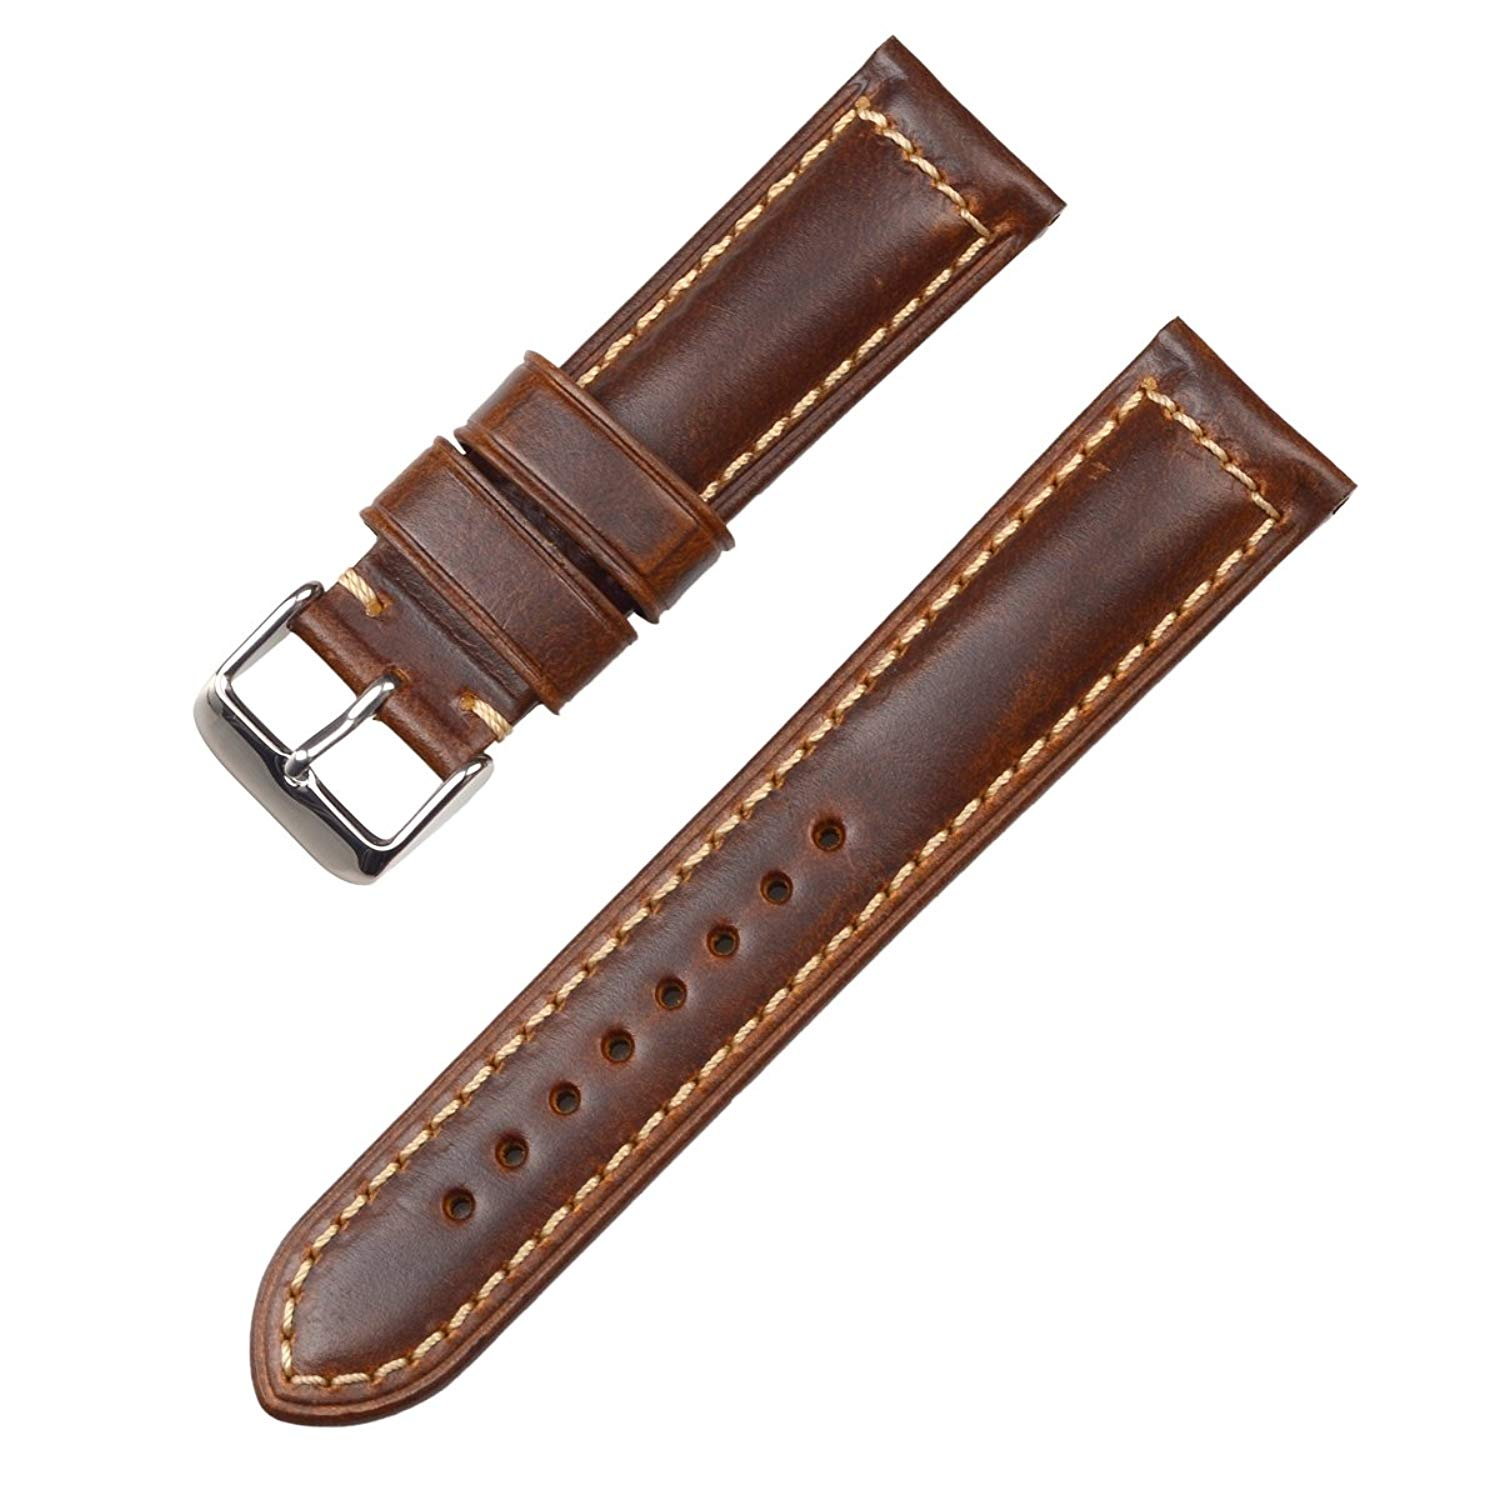 Genuine Leather Watchband, EACHE Oil Waxed Genuine Leather Watchband Vintage Style 6colors 18mm 20mm 22mm 24mm 26mm Black Buckle Silver Buckle